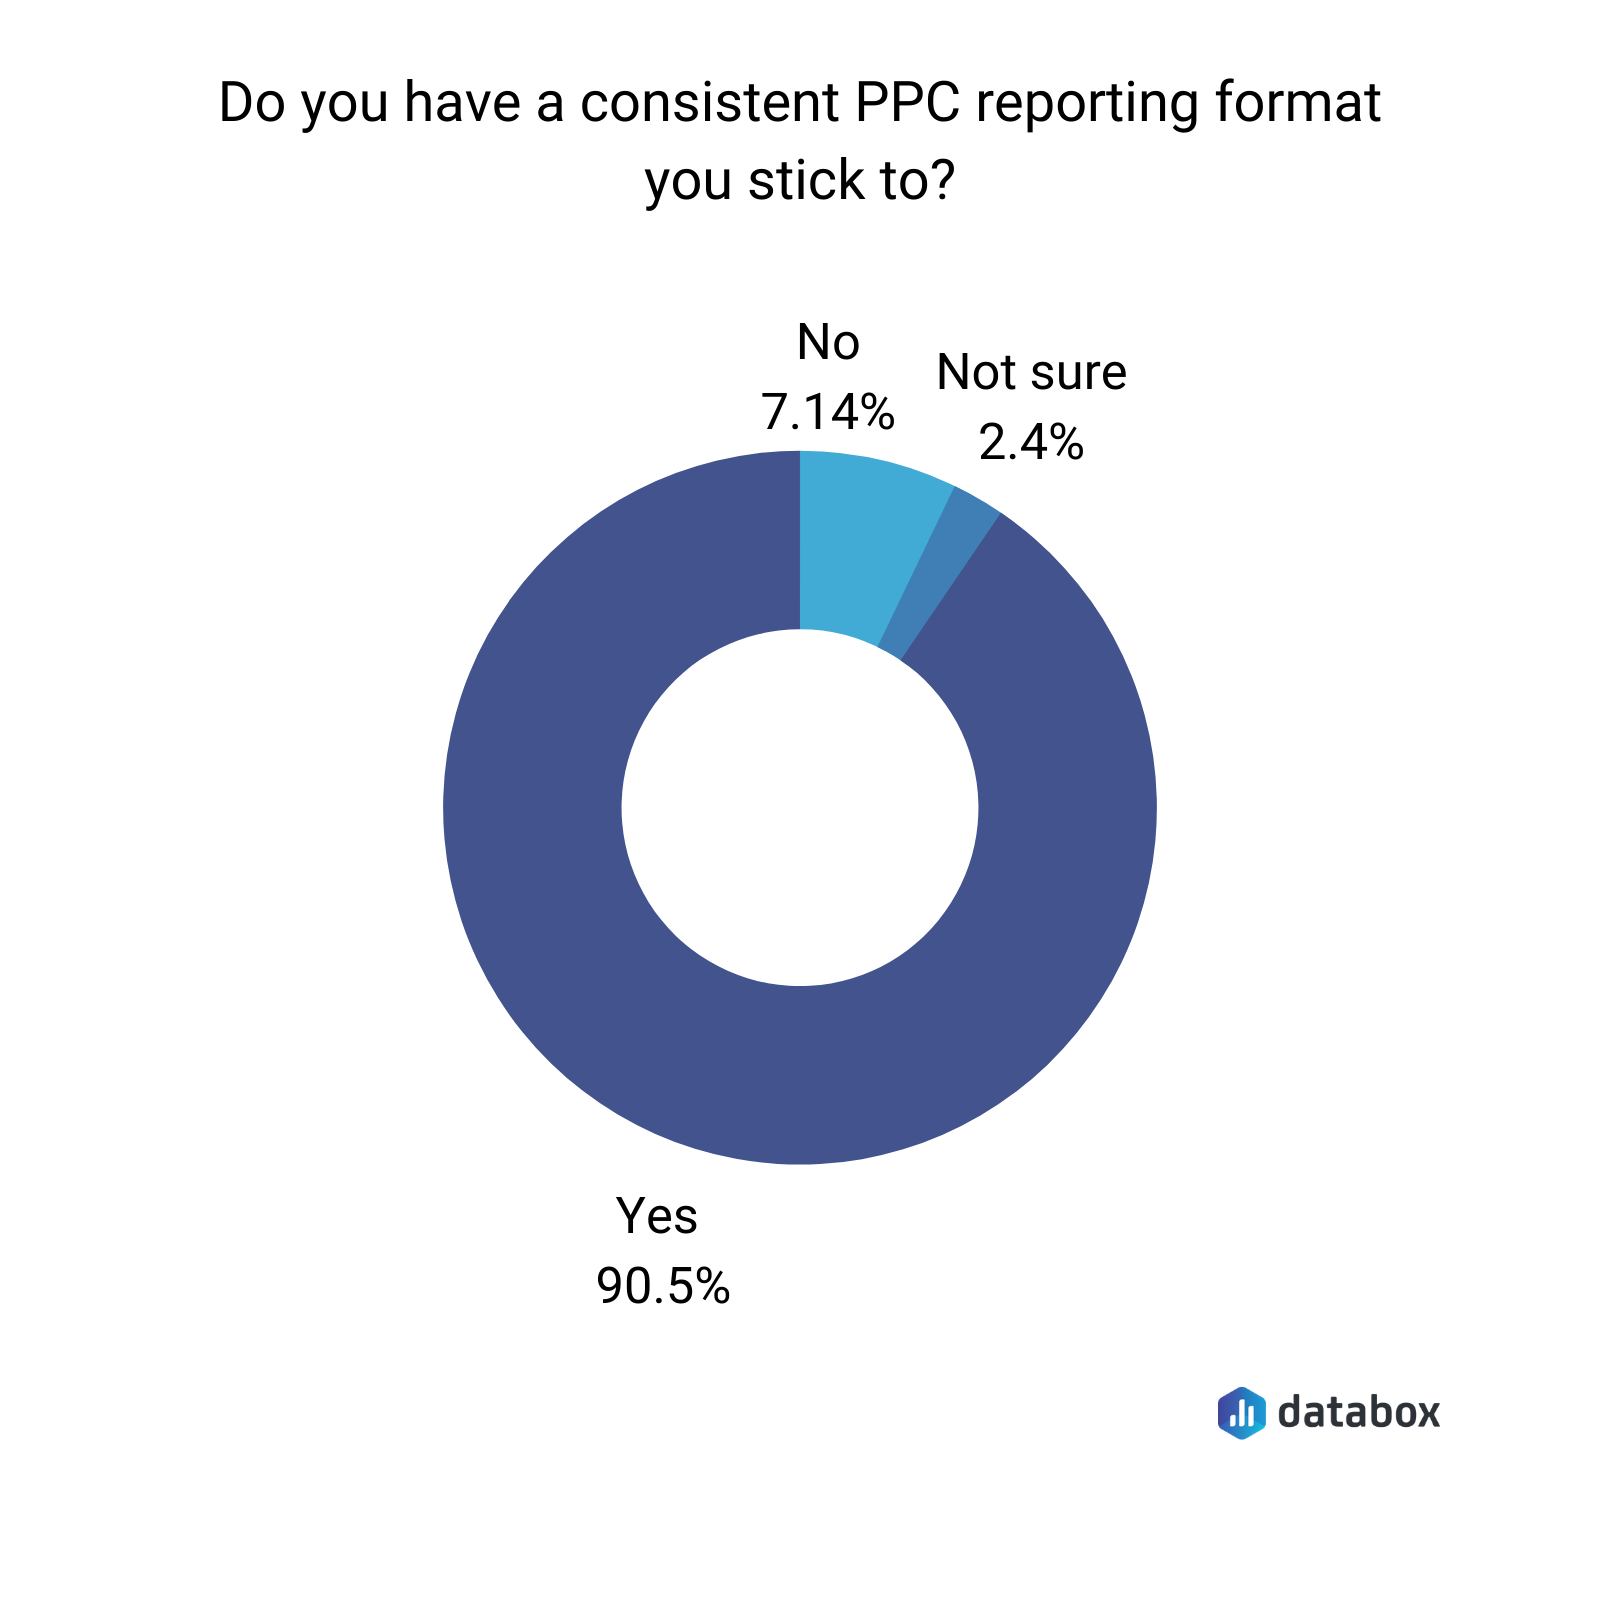 do you have consistent ppc reporting format you stick to?